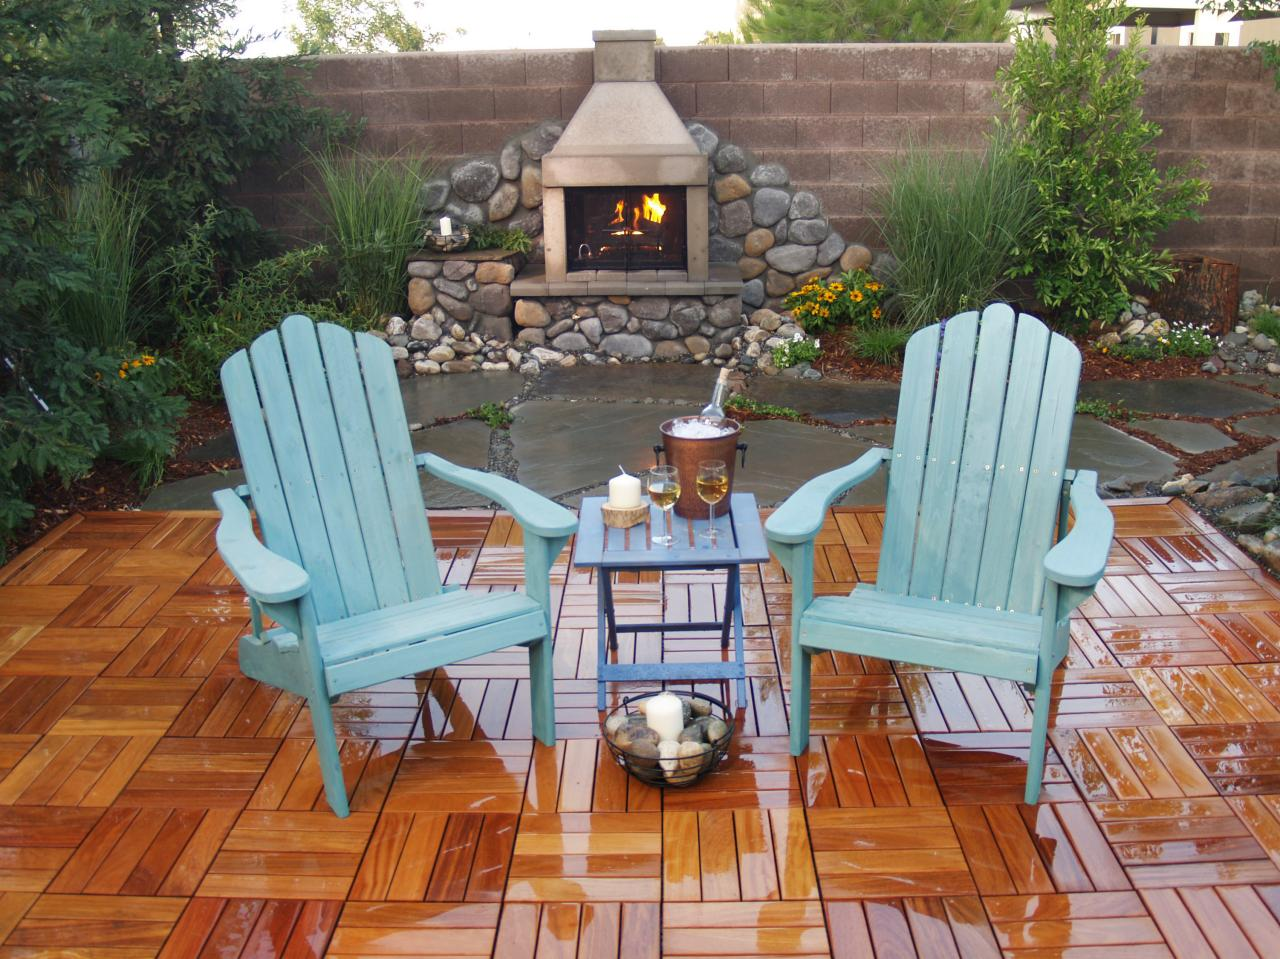 Photos of Featured in Yard Crashers episode  diy outdoor fireplace